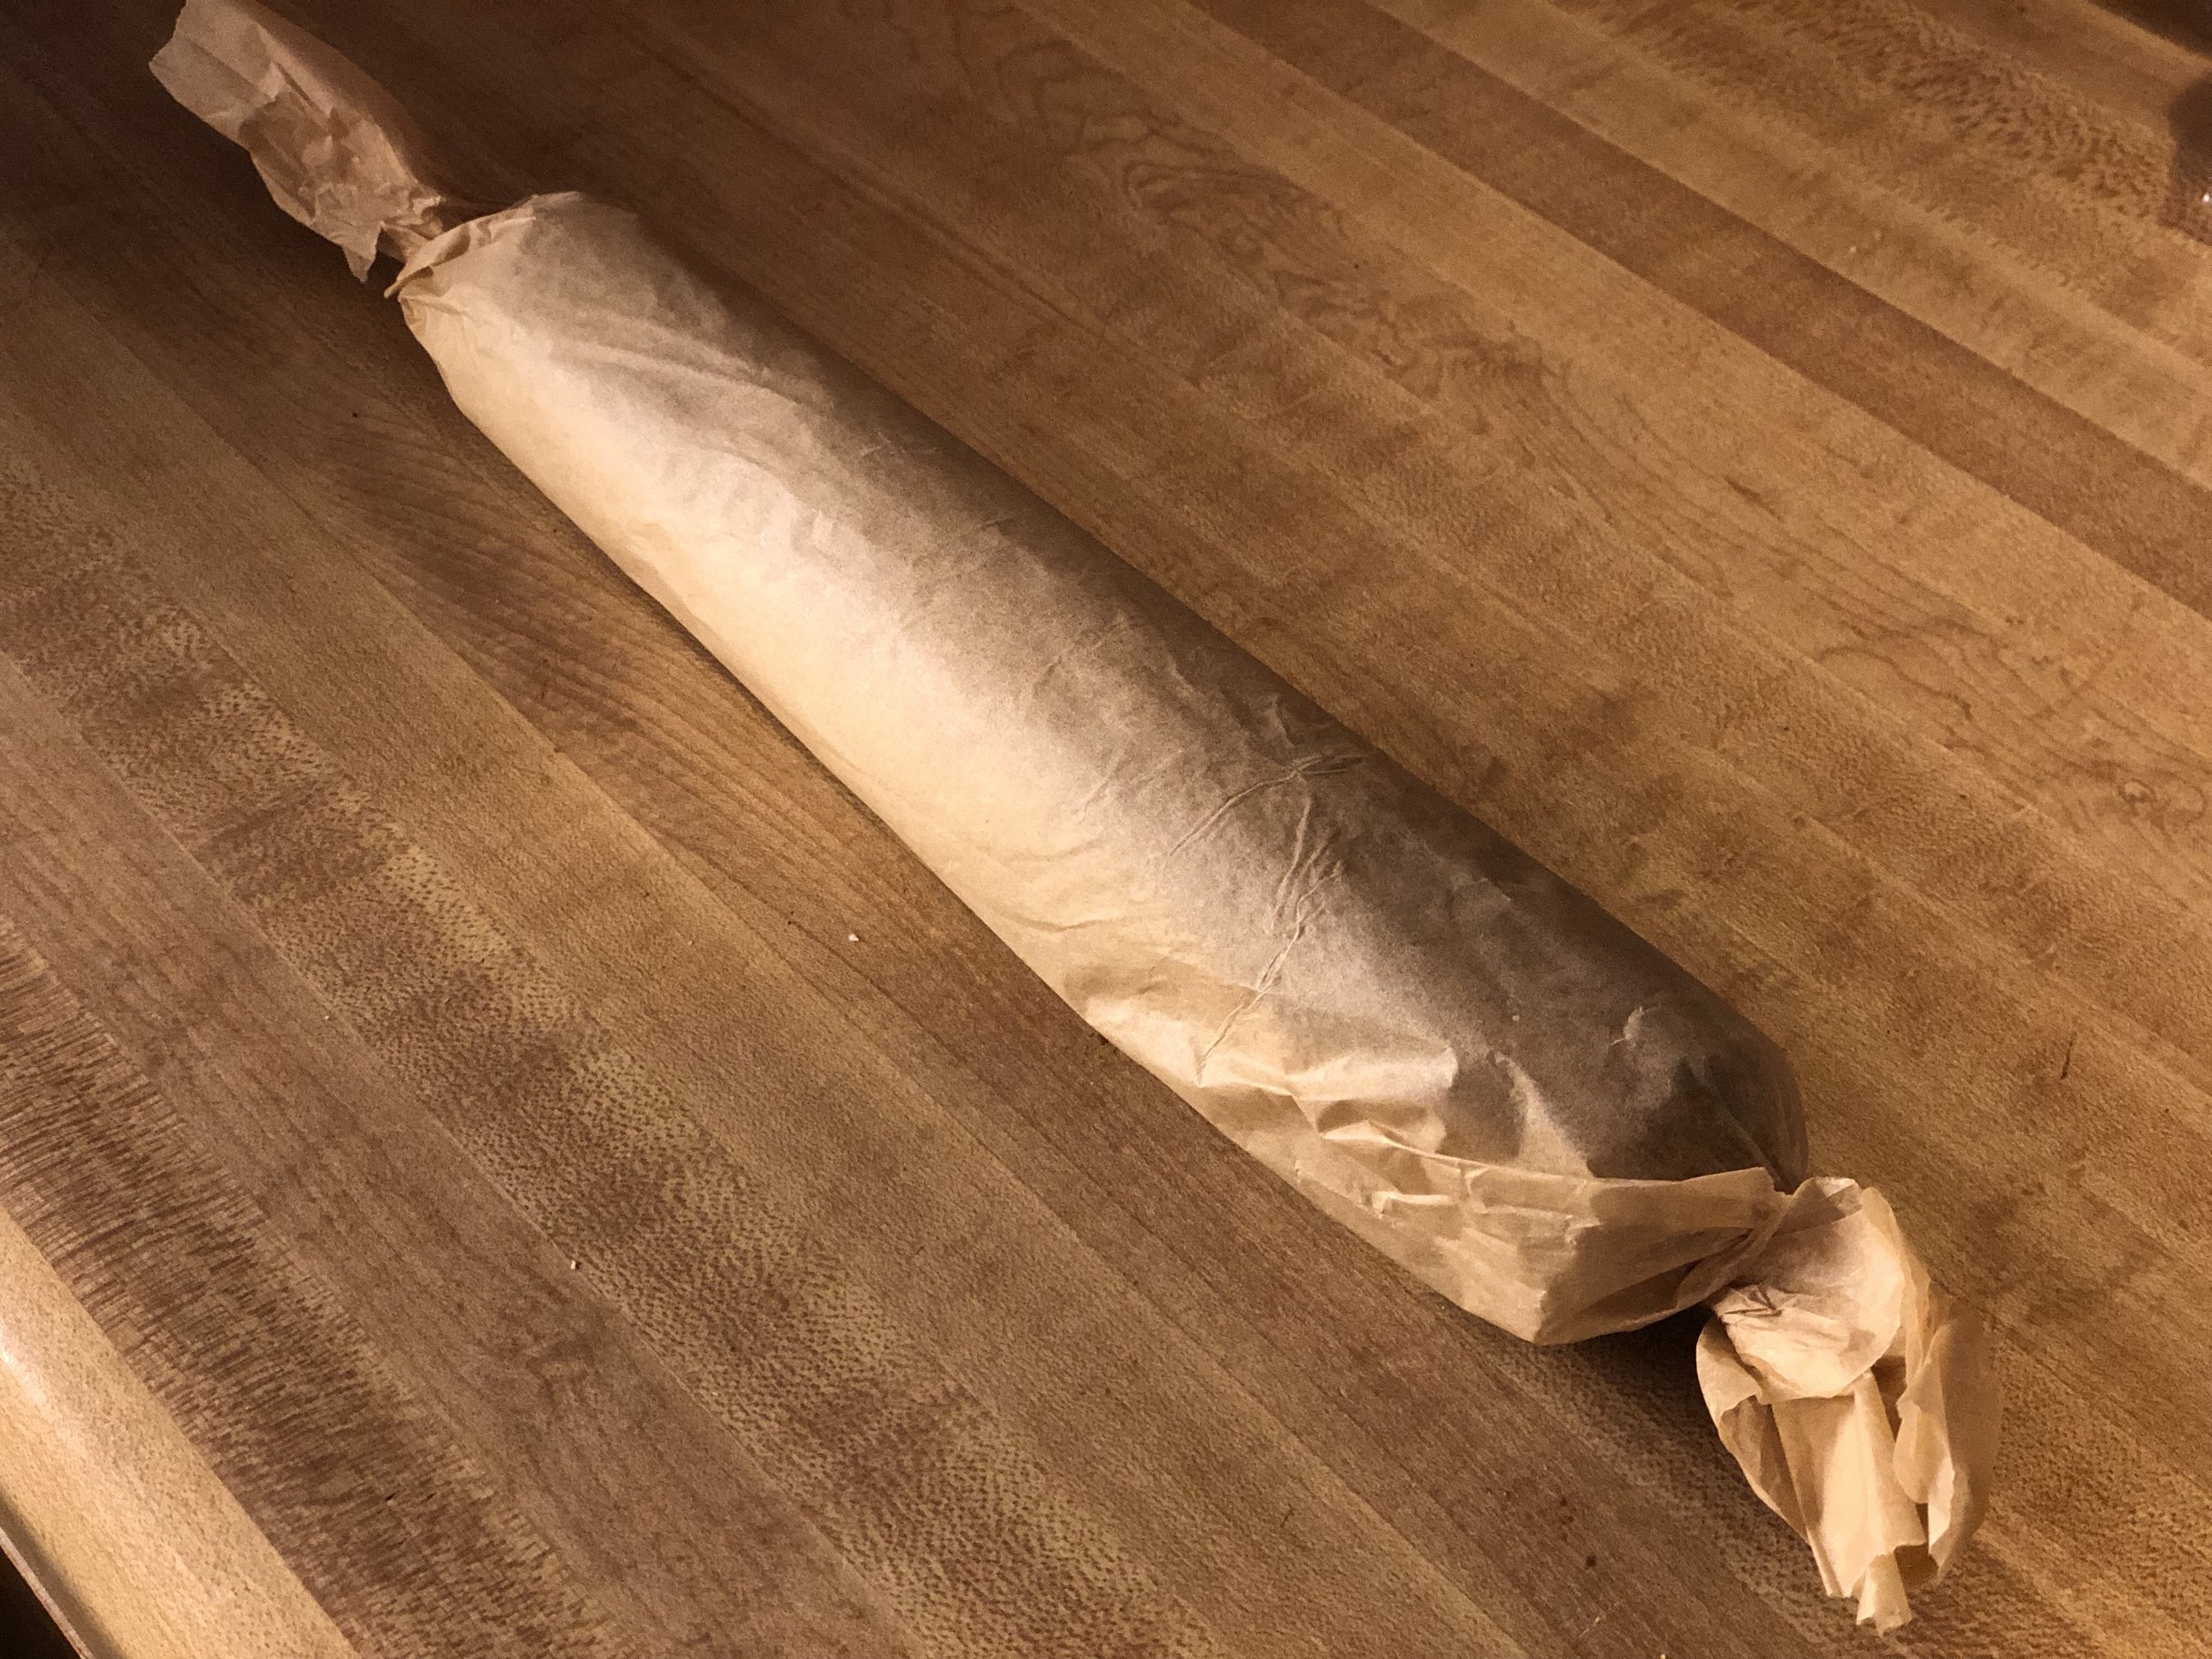 Roll the coconut log tightly with parchment paper and twist the ends. Place in the freezer 20-45min